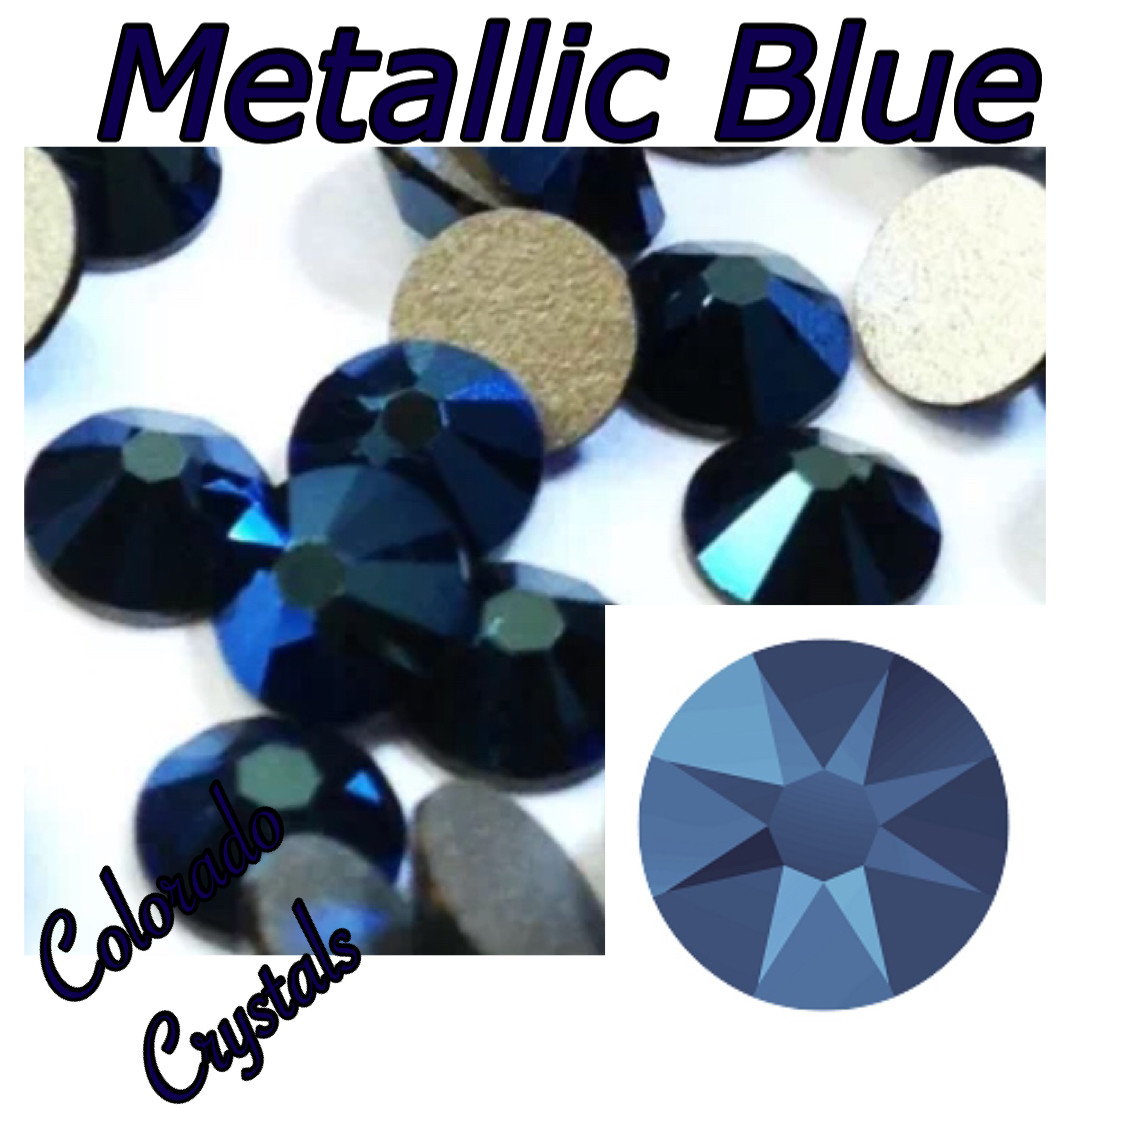 Metallic Blue (Crystal) 34ss 2088